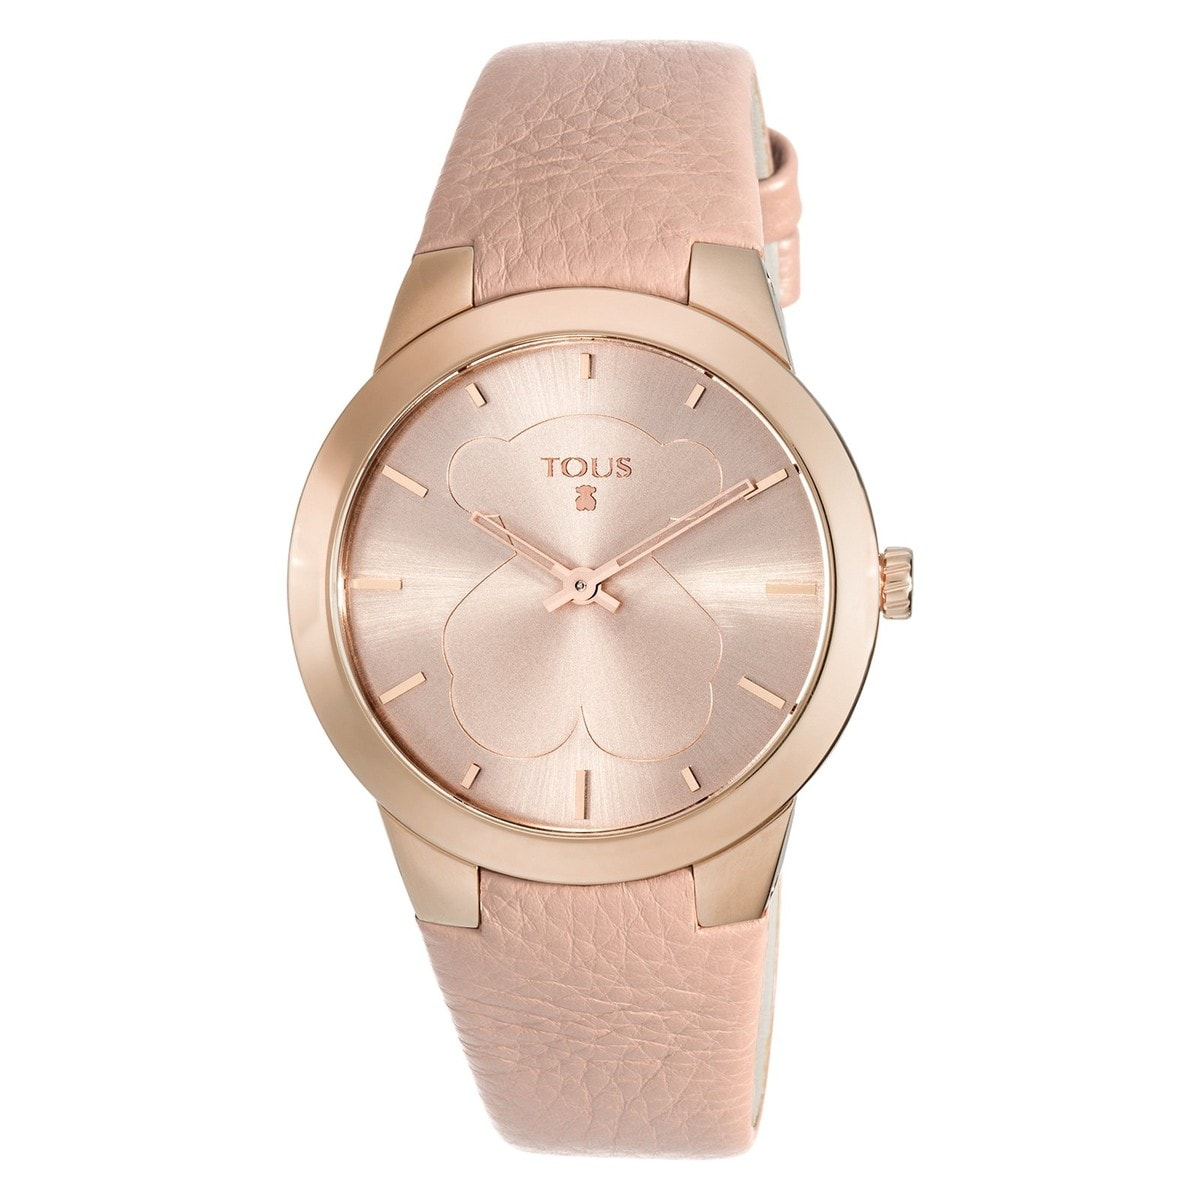 96554b407eb7 Pink IP Steel B-Face Watch with nude Leather strap - Tous Site US